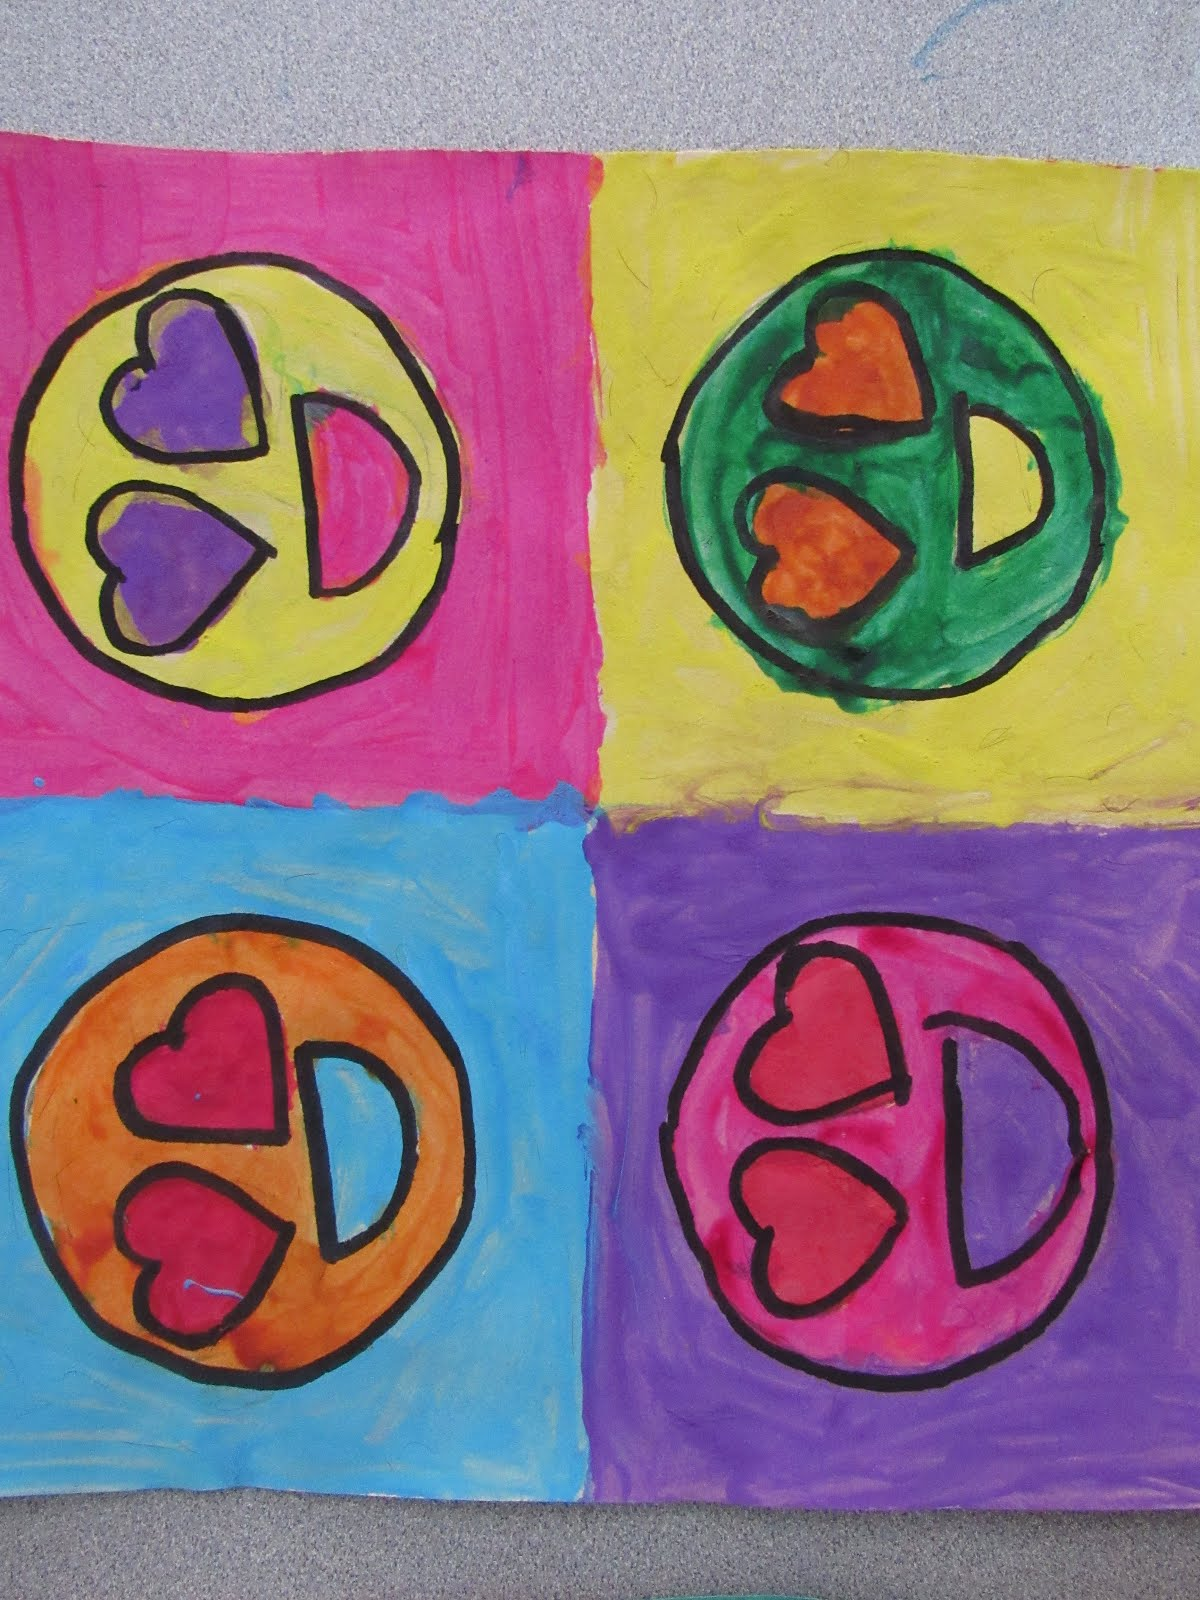 6th Graders Did A Quick Andy Warhol Project To Learn About The Color Wheel And Contrasting Colors They Chose 1 Object Re Drew It 4 Times Painting With